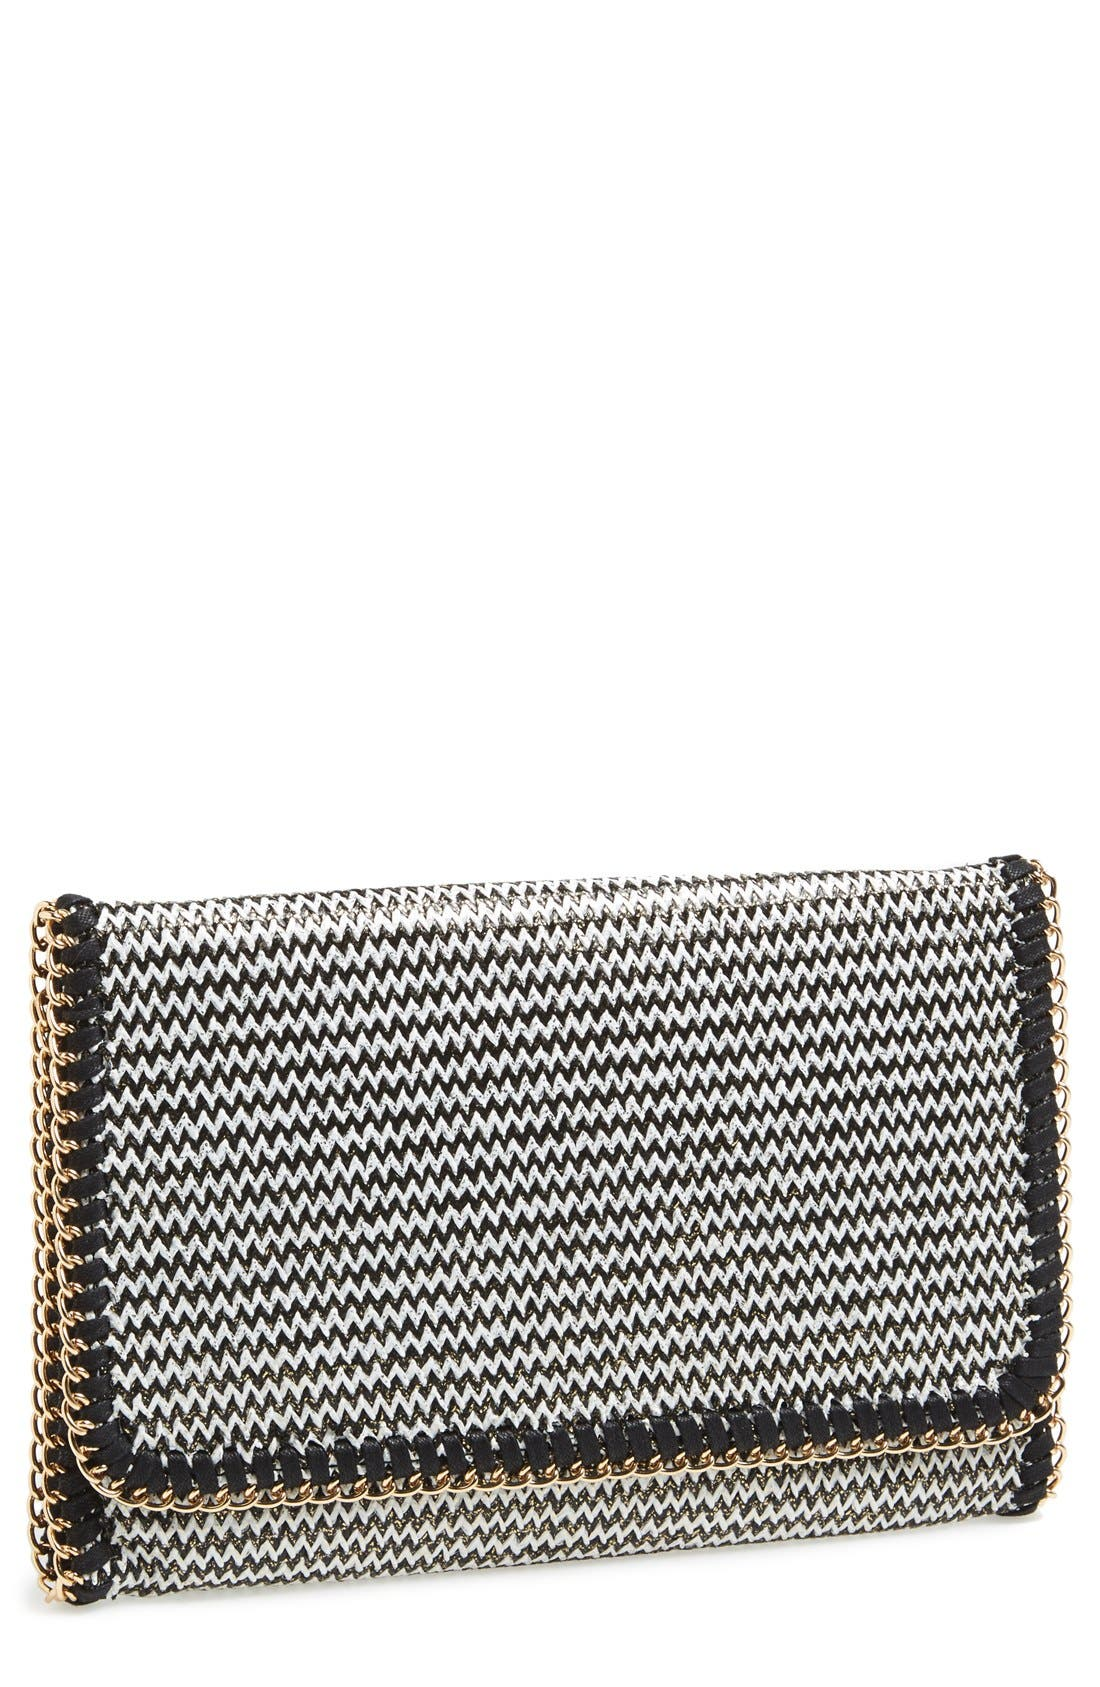 PHASE 3 'Zigzag' Chain Clutch, Main, color, 001